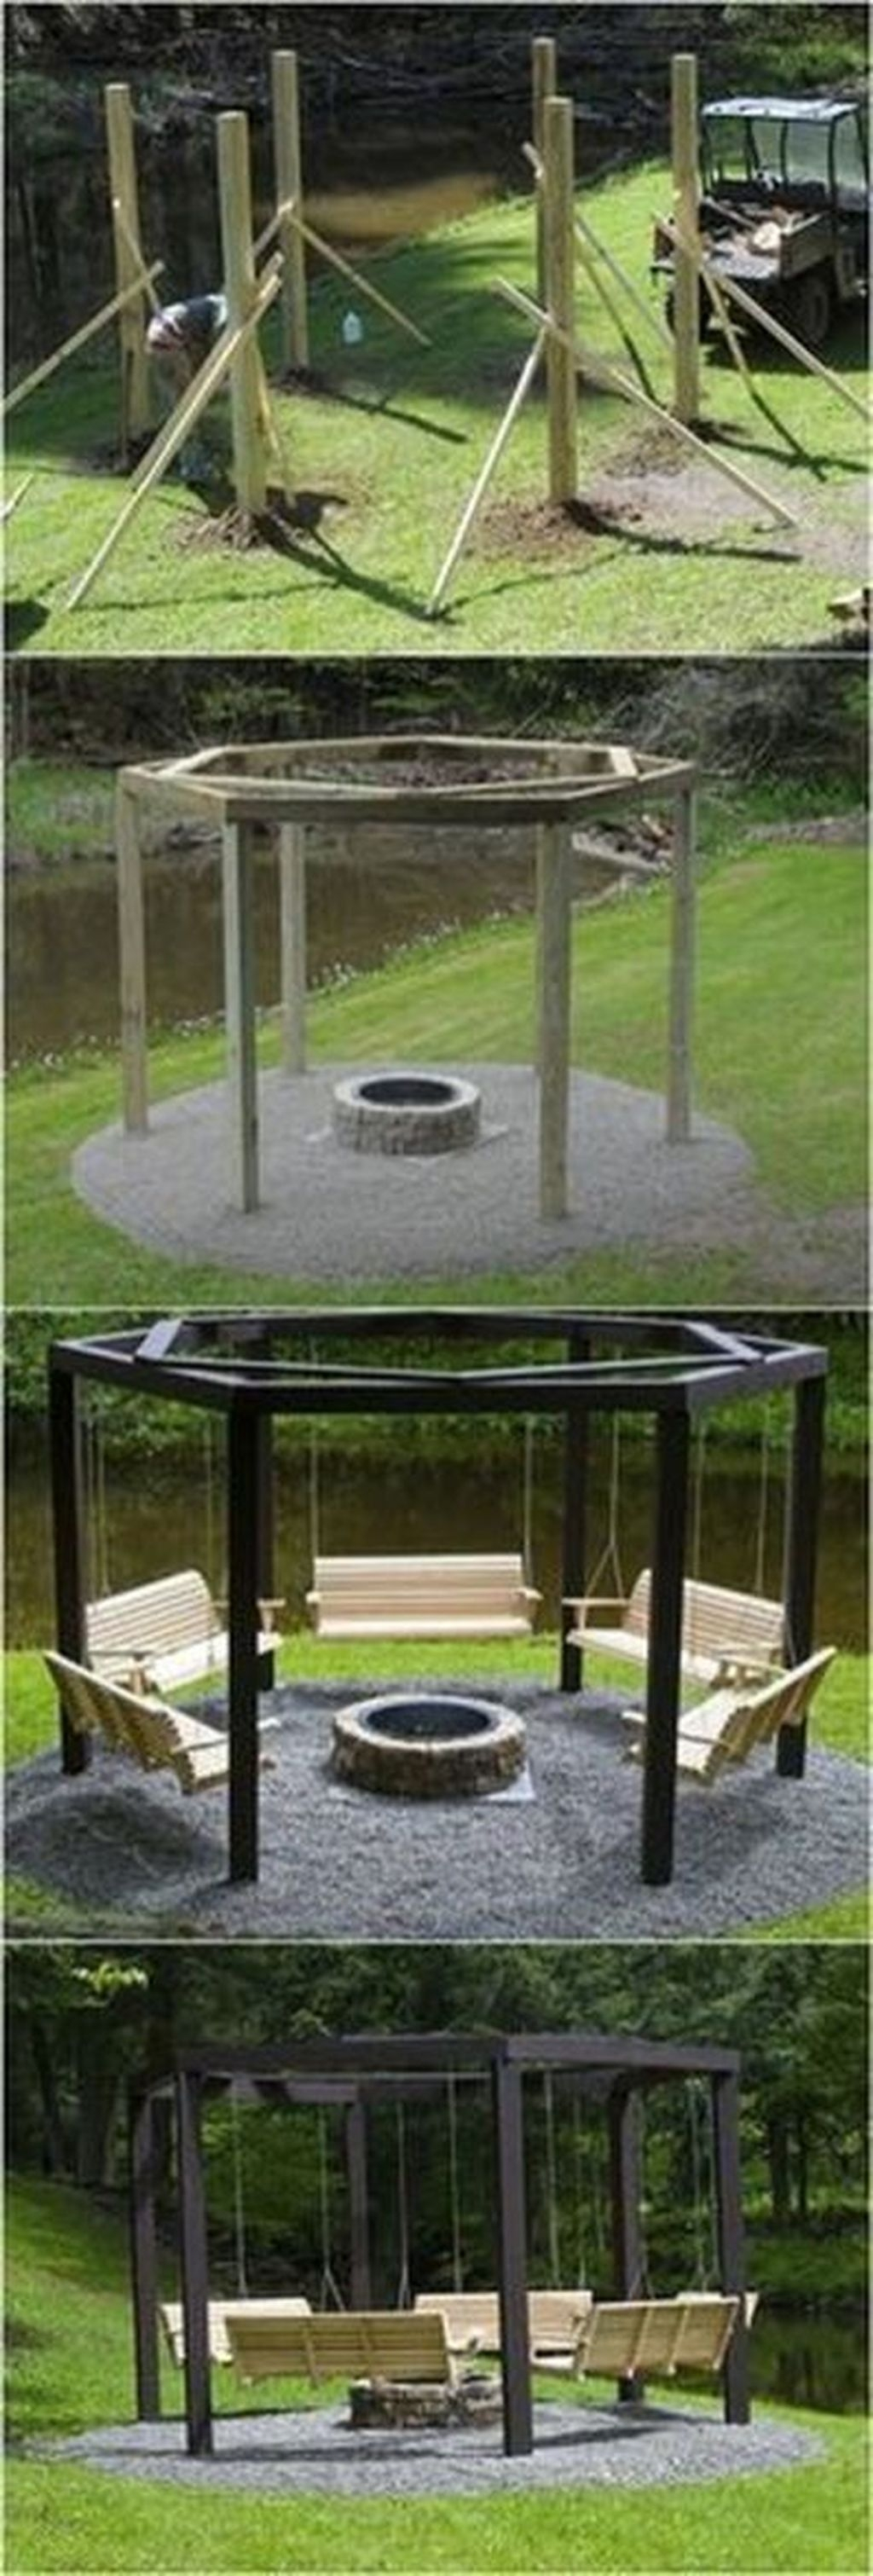 Popular Diy Backyard Projects Ideas For Your Pets 11